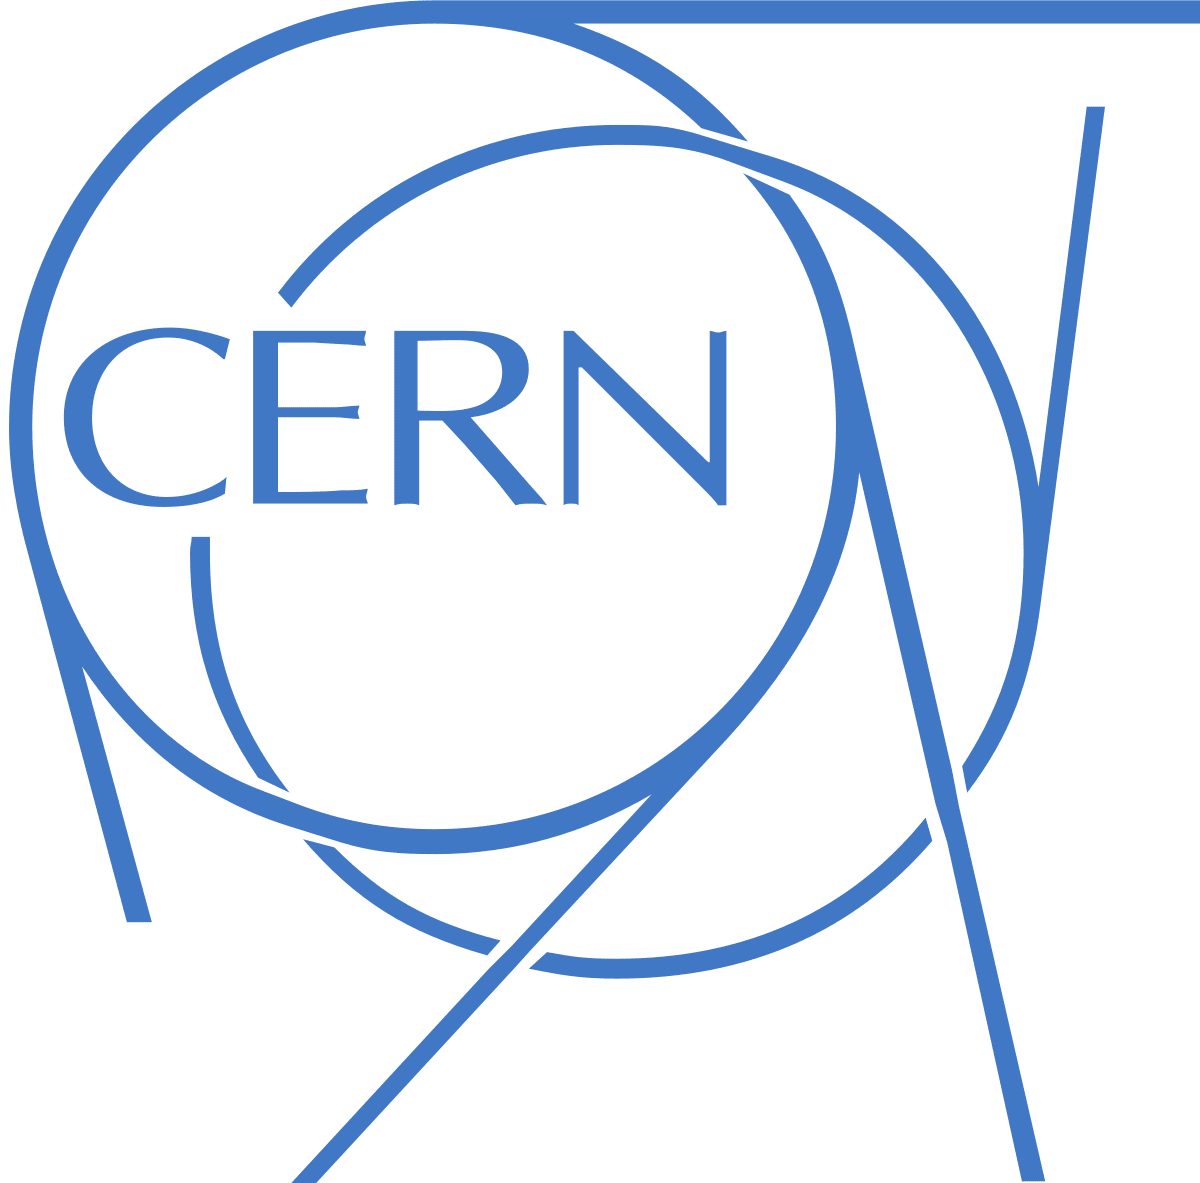 CERN Summertime Trainees Program 2019 for young trainees– Geneva, Switzerland (Moneyed)